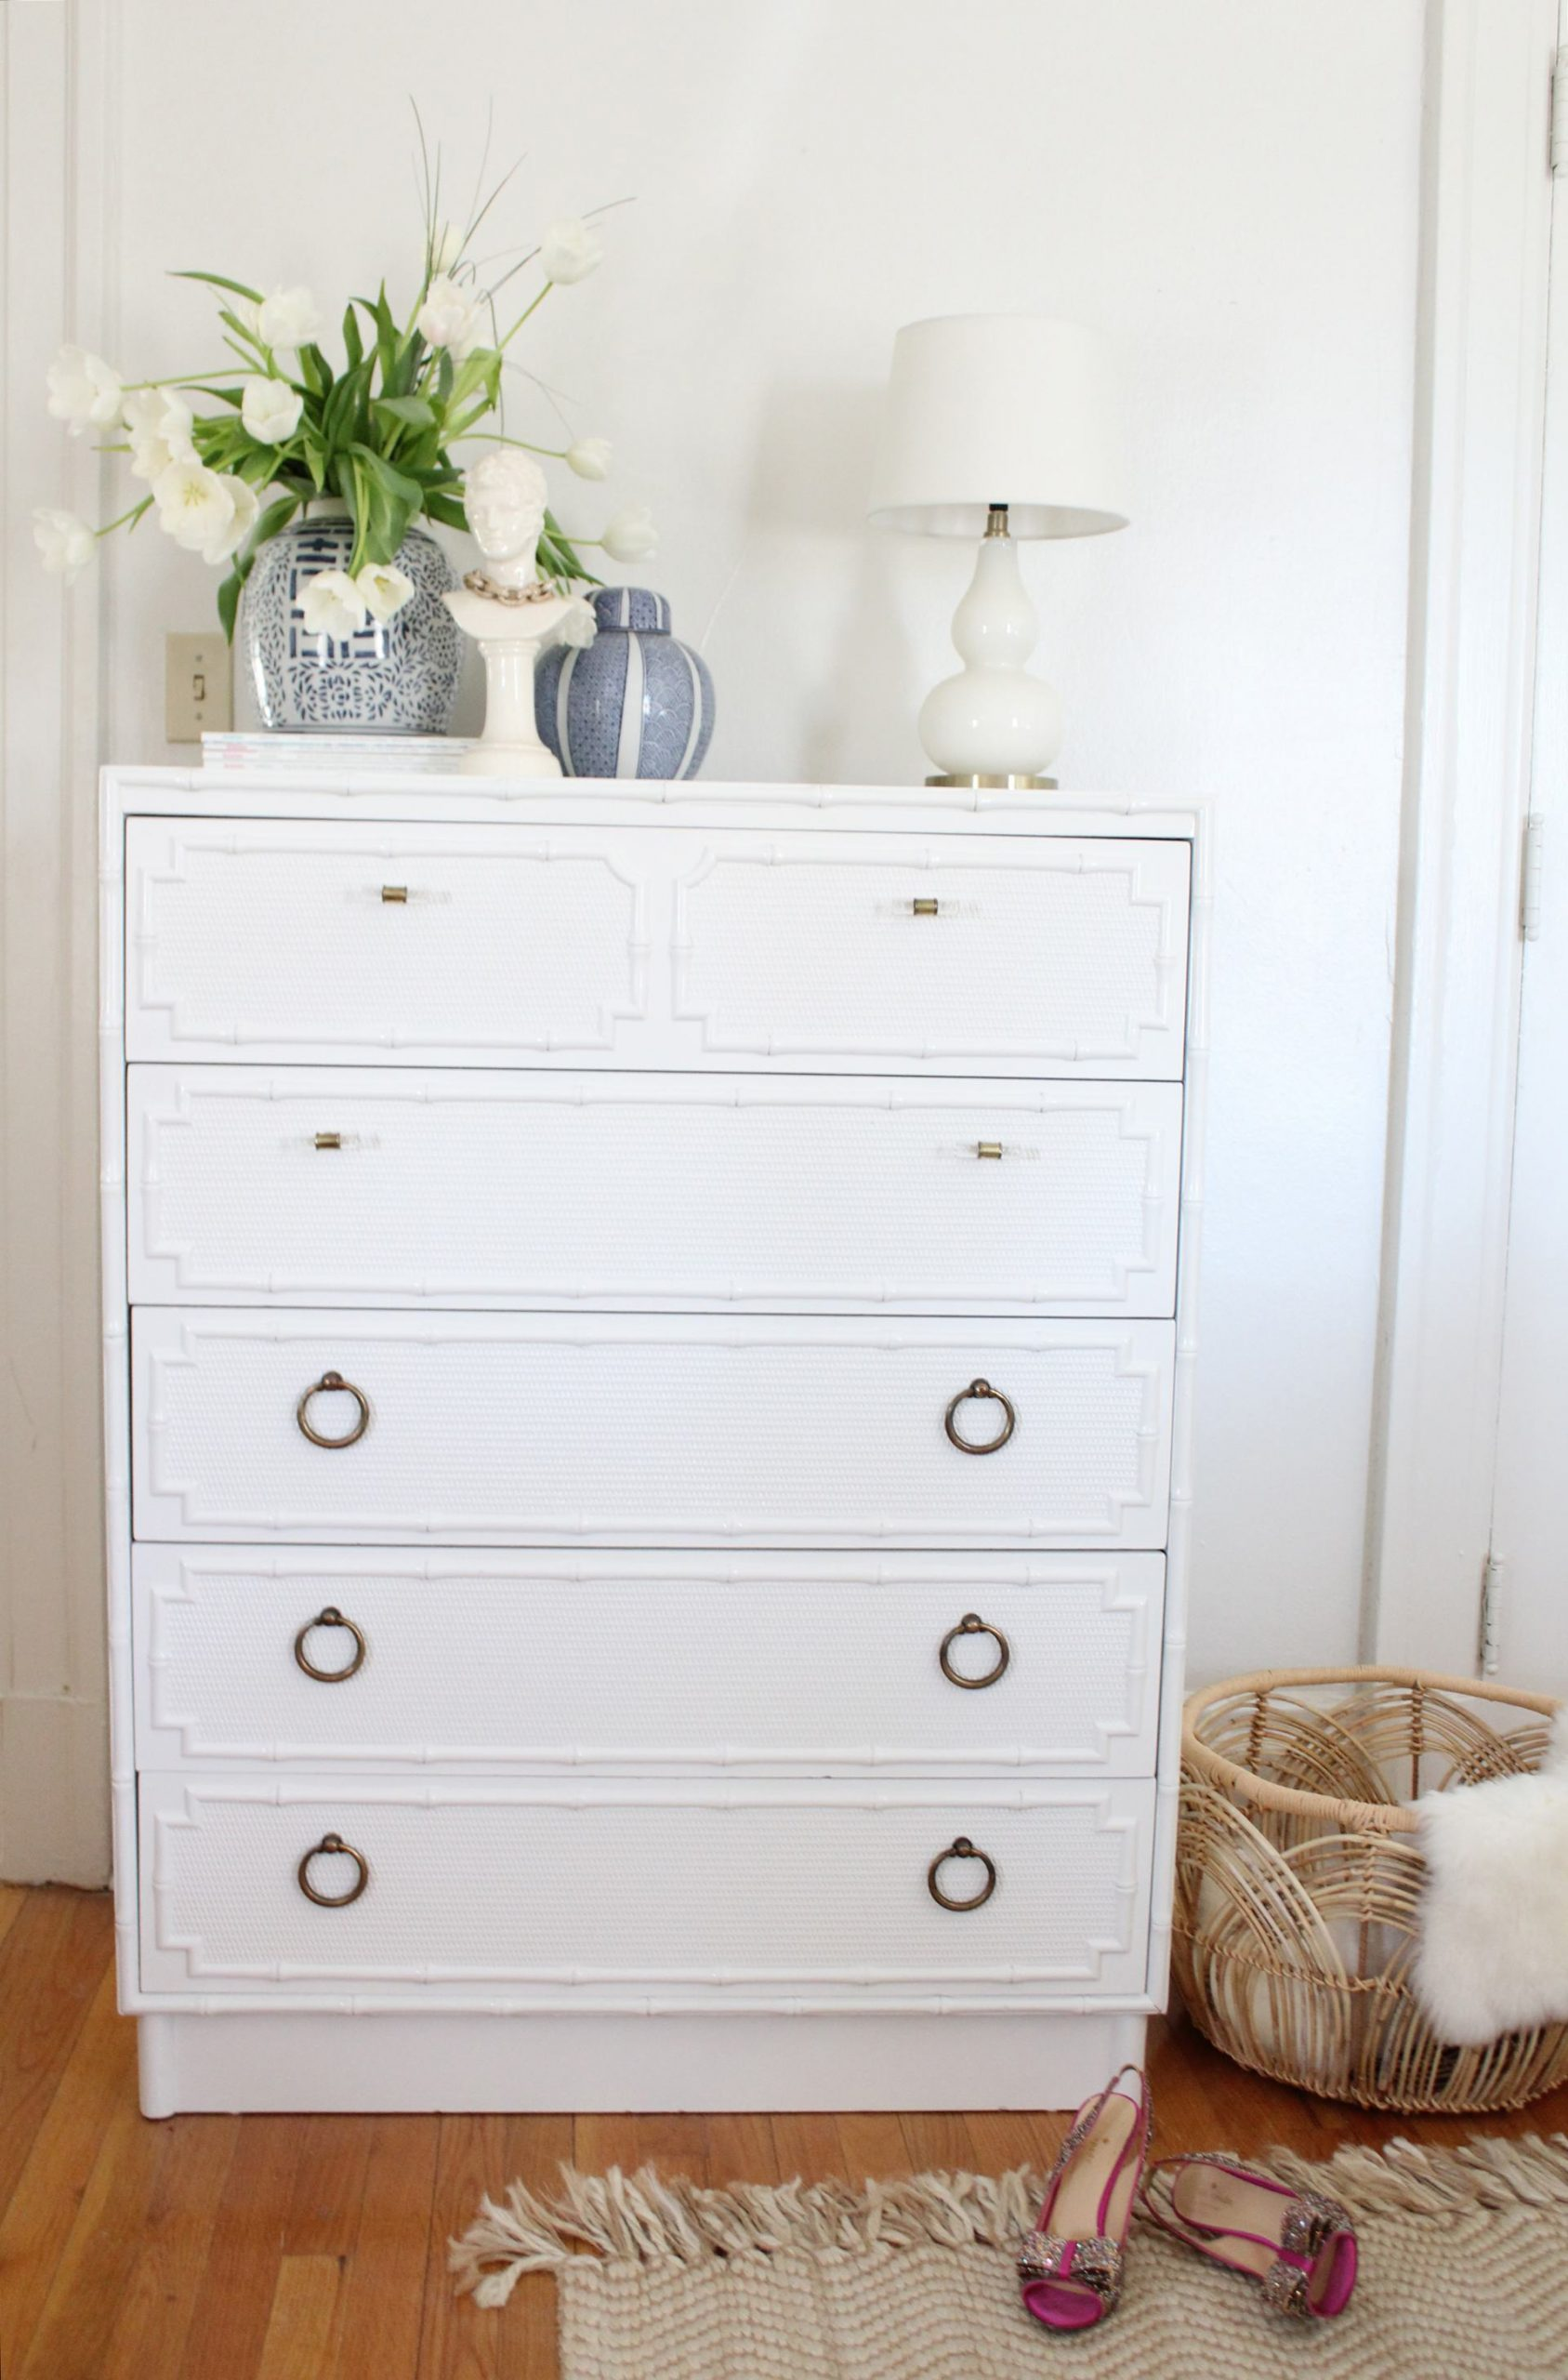 faux bamboo dresser - vintage dresser - chinoiserie dresser - furniture DIY - painted furniture - thrifted dresser - thrifted furniture - furniture before and after - palm beach chic - regency chic - vintage furniture DIY - chinoiserie chic style